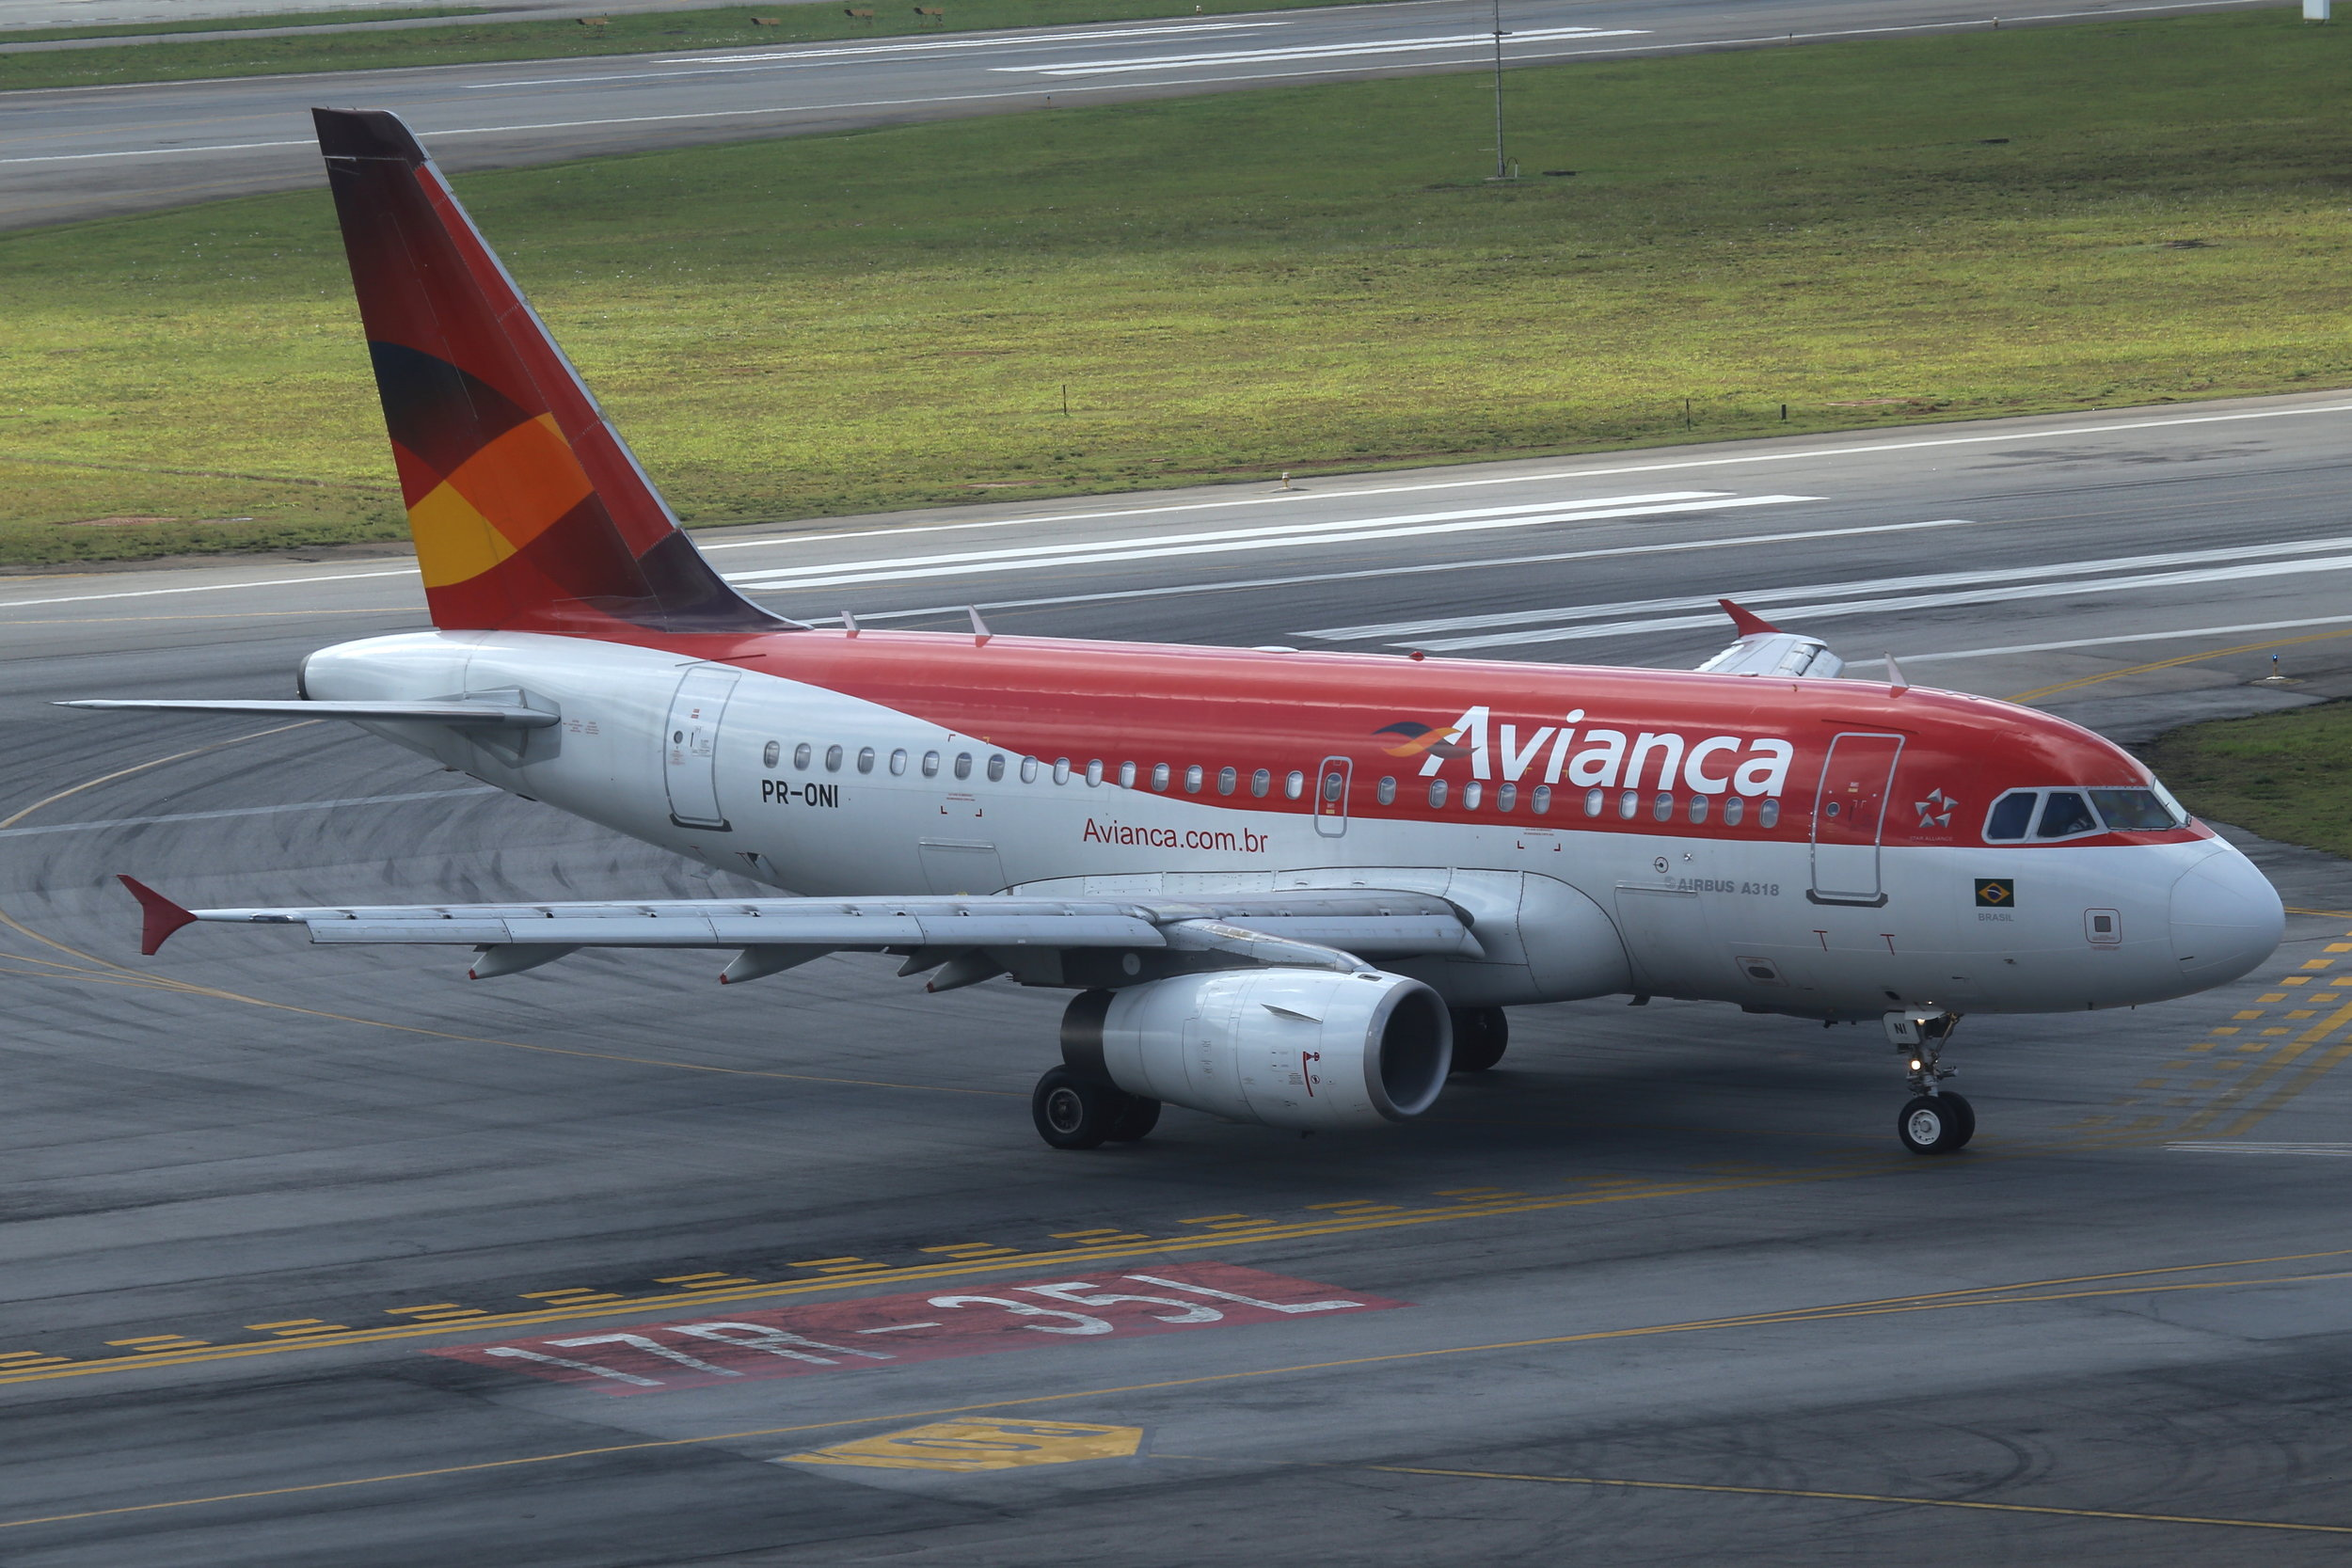 PR-ONI Avianca Brasil A318 taken from the Slaveiro Slim hotel at Sao Paulo Congonhas Airport 29th April 2019 by John Wood